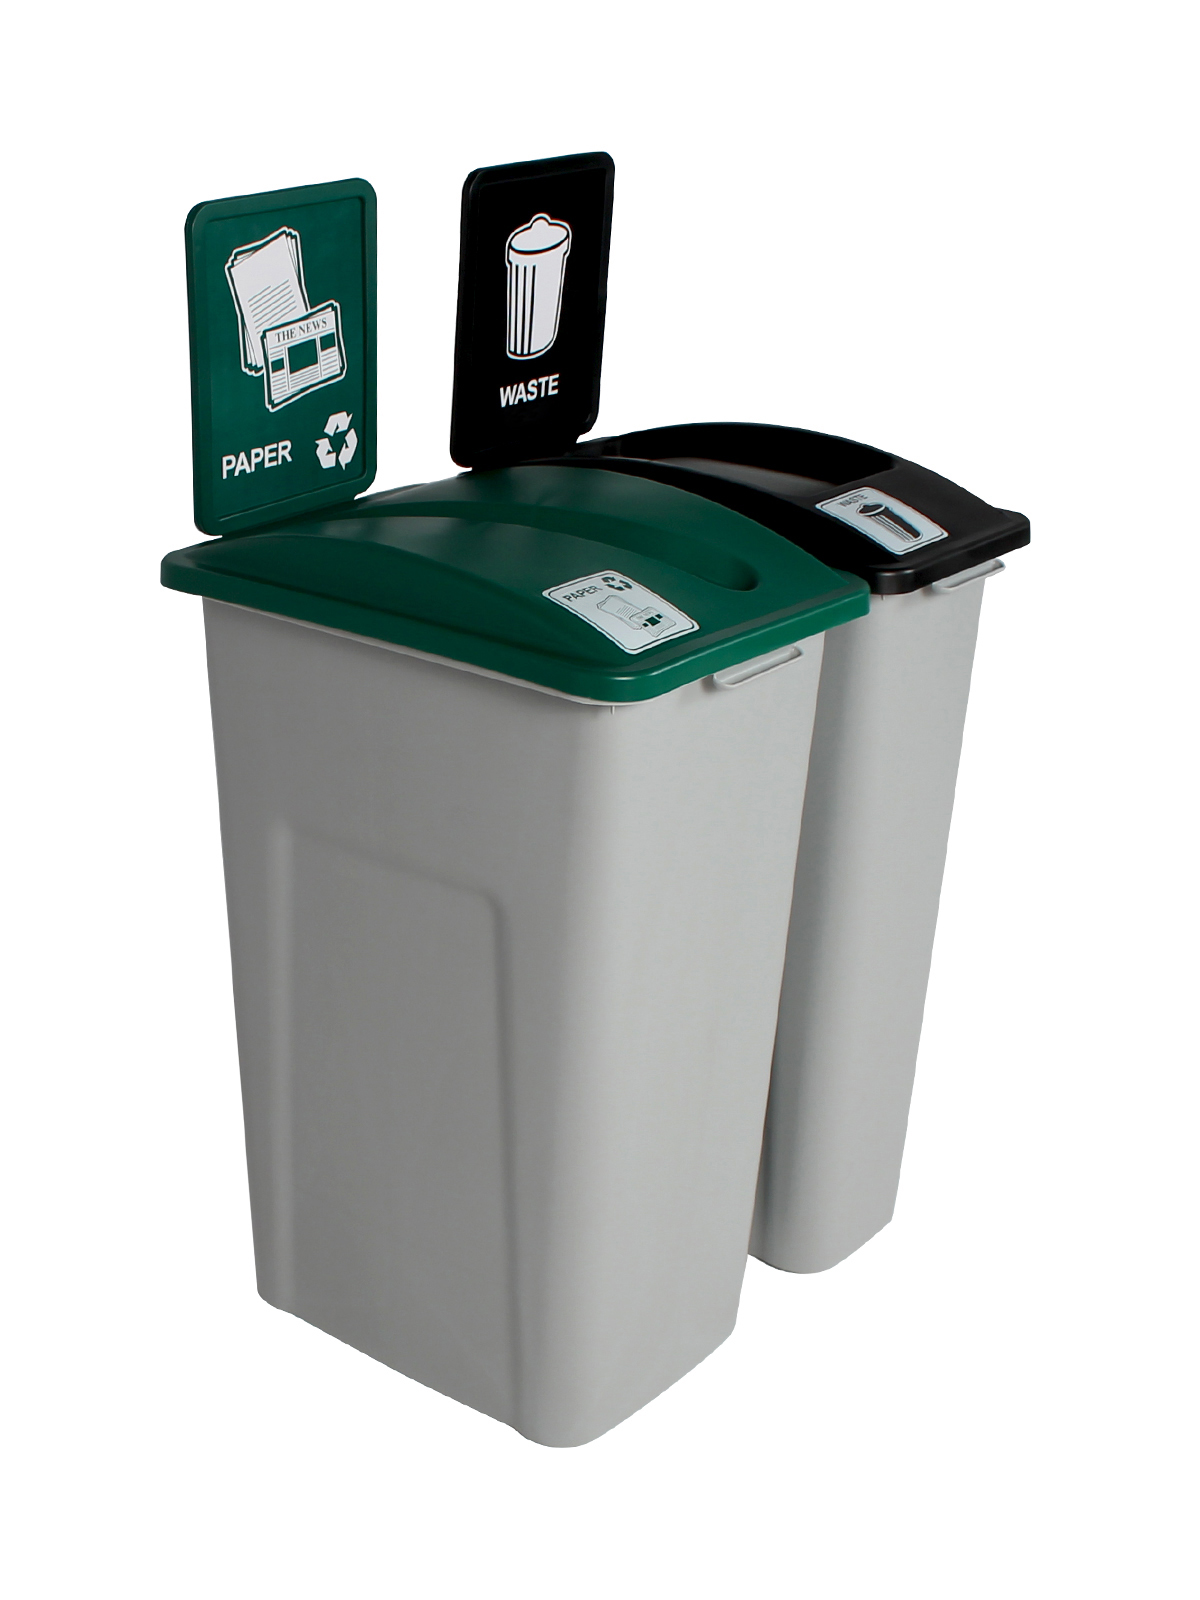 WASTE WATCHER XL - Double - Paper-Waste - Slot-Full - Grey-Green-Black